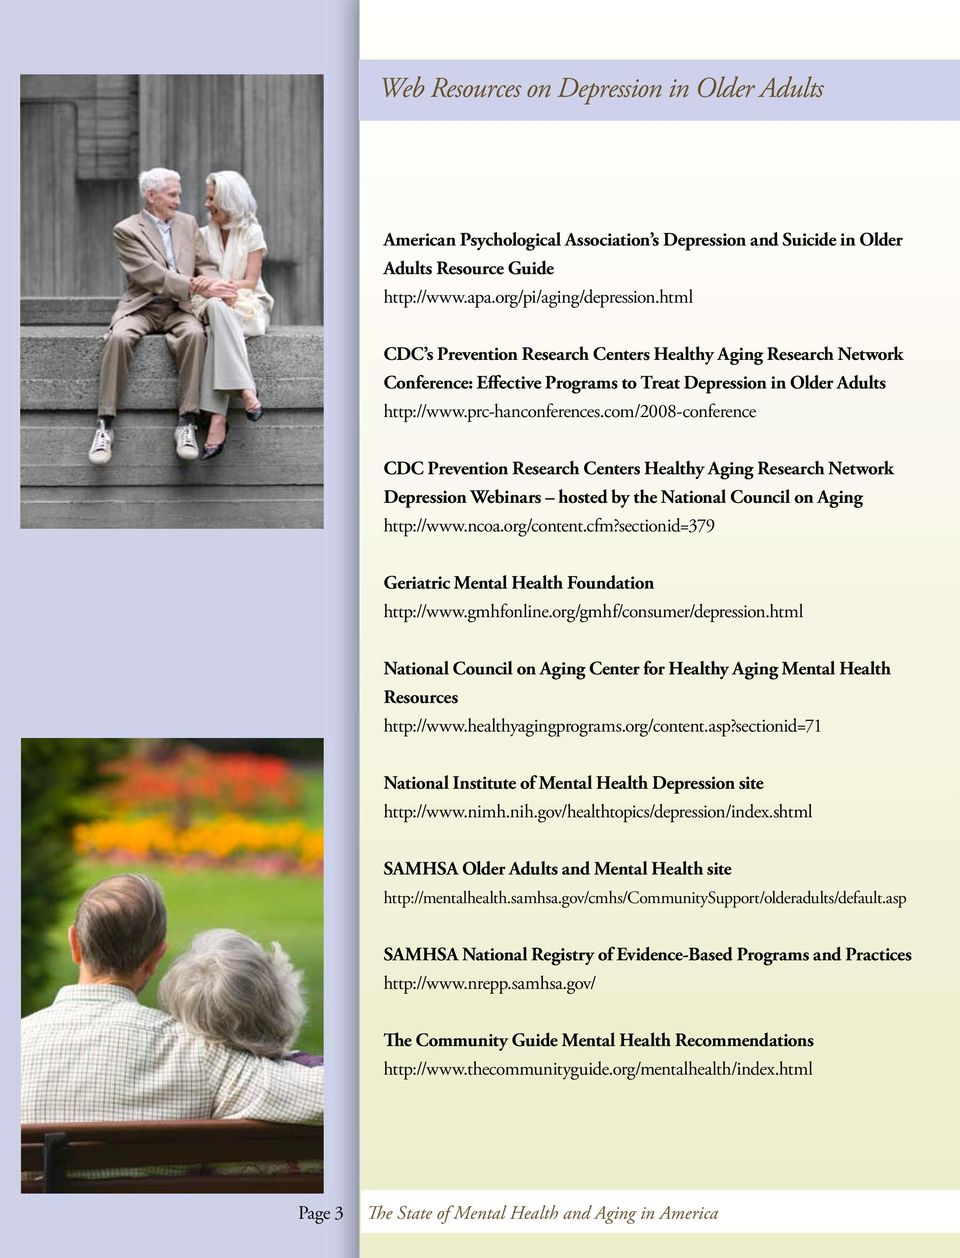 com/2008-conference CDC Prevention Research Centers Healthy Aging Research Network Depression Webinars hosted by the National Council on Aging http://www.ncoa.org/content.cfm?